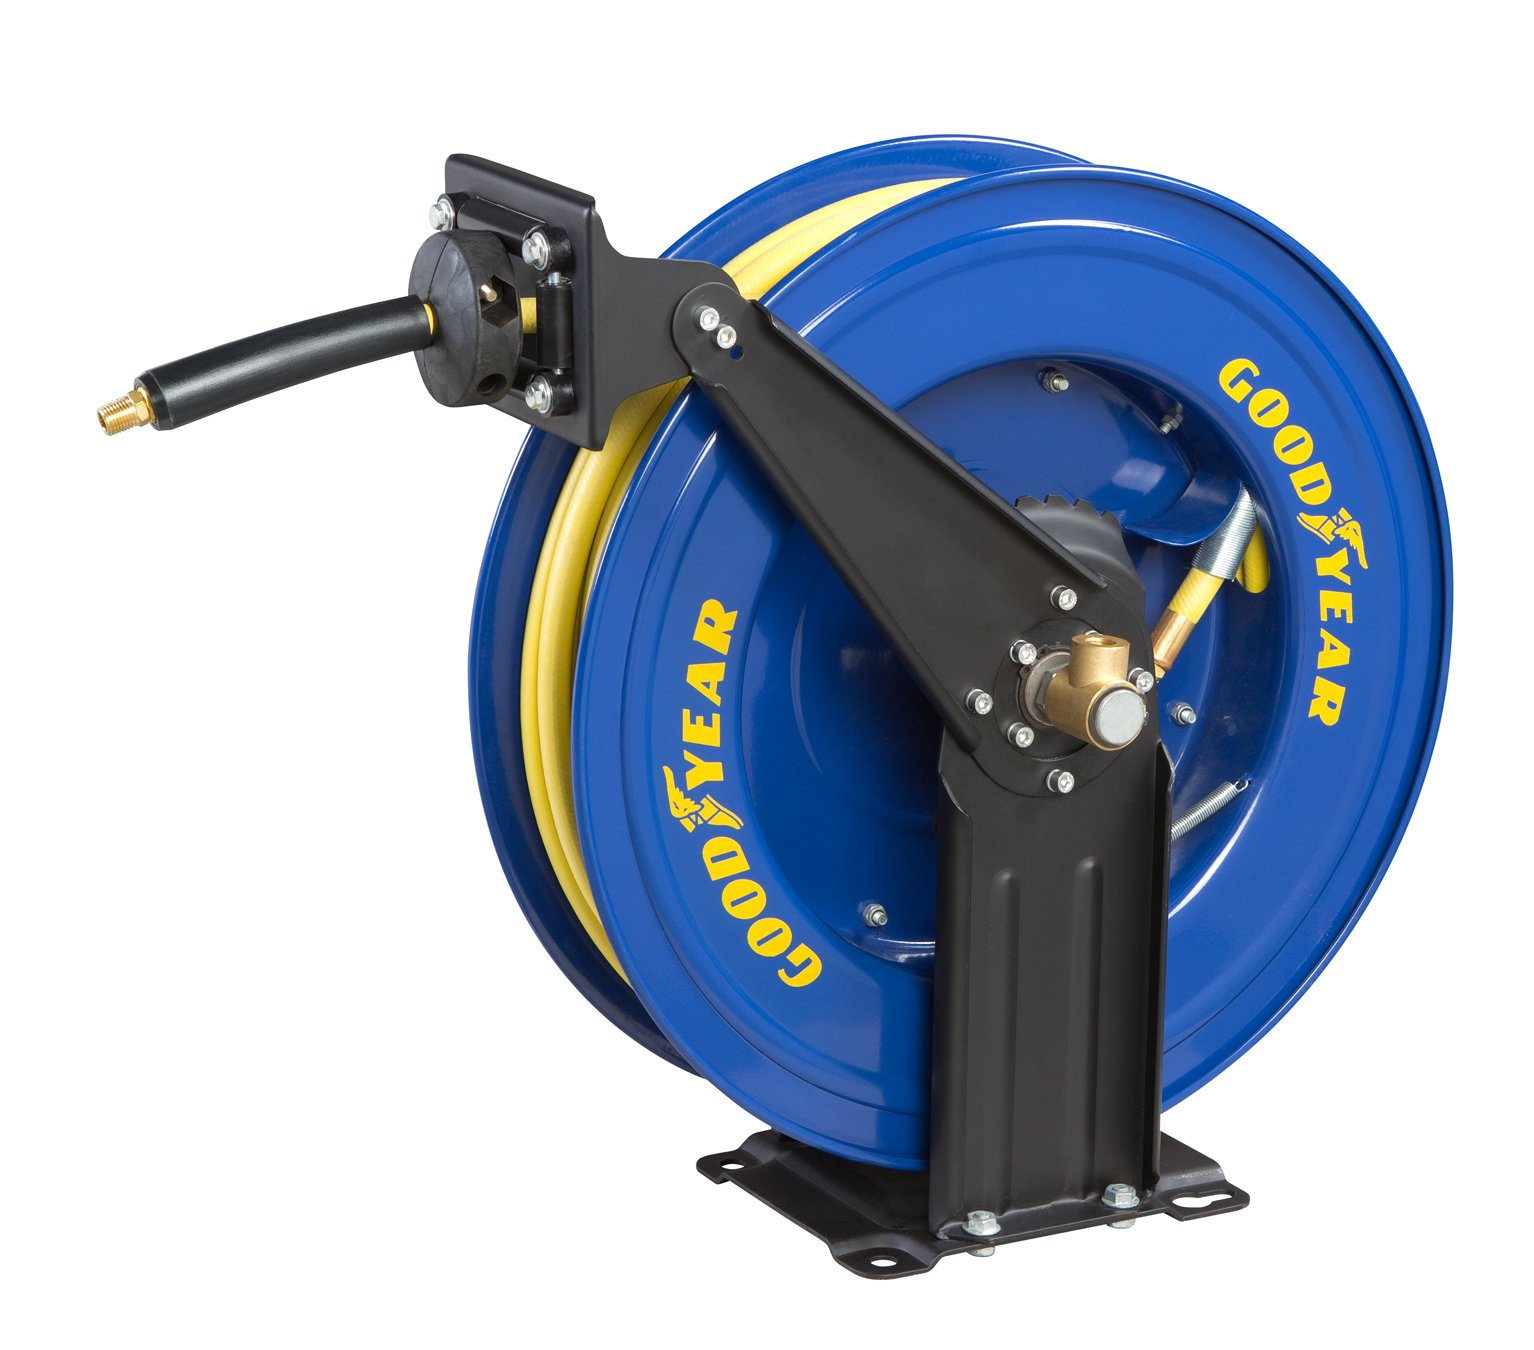 GOODYEAR 46731 3/8-Inch by 50-Feet Retractable Air Hose Reel [Discontinued] by Goodyear